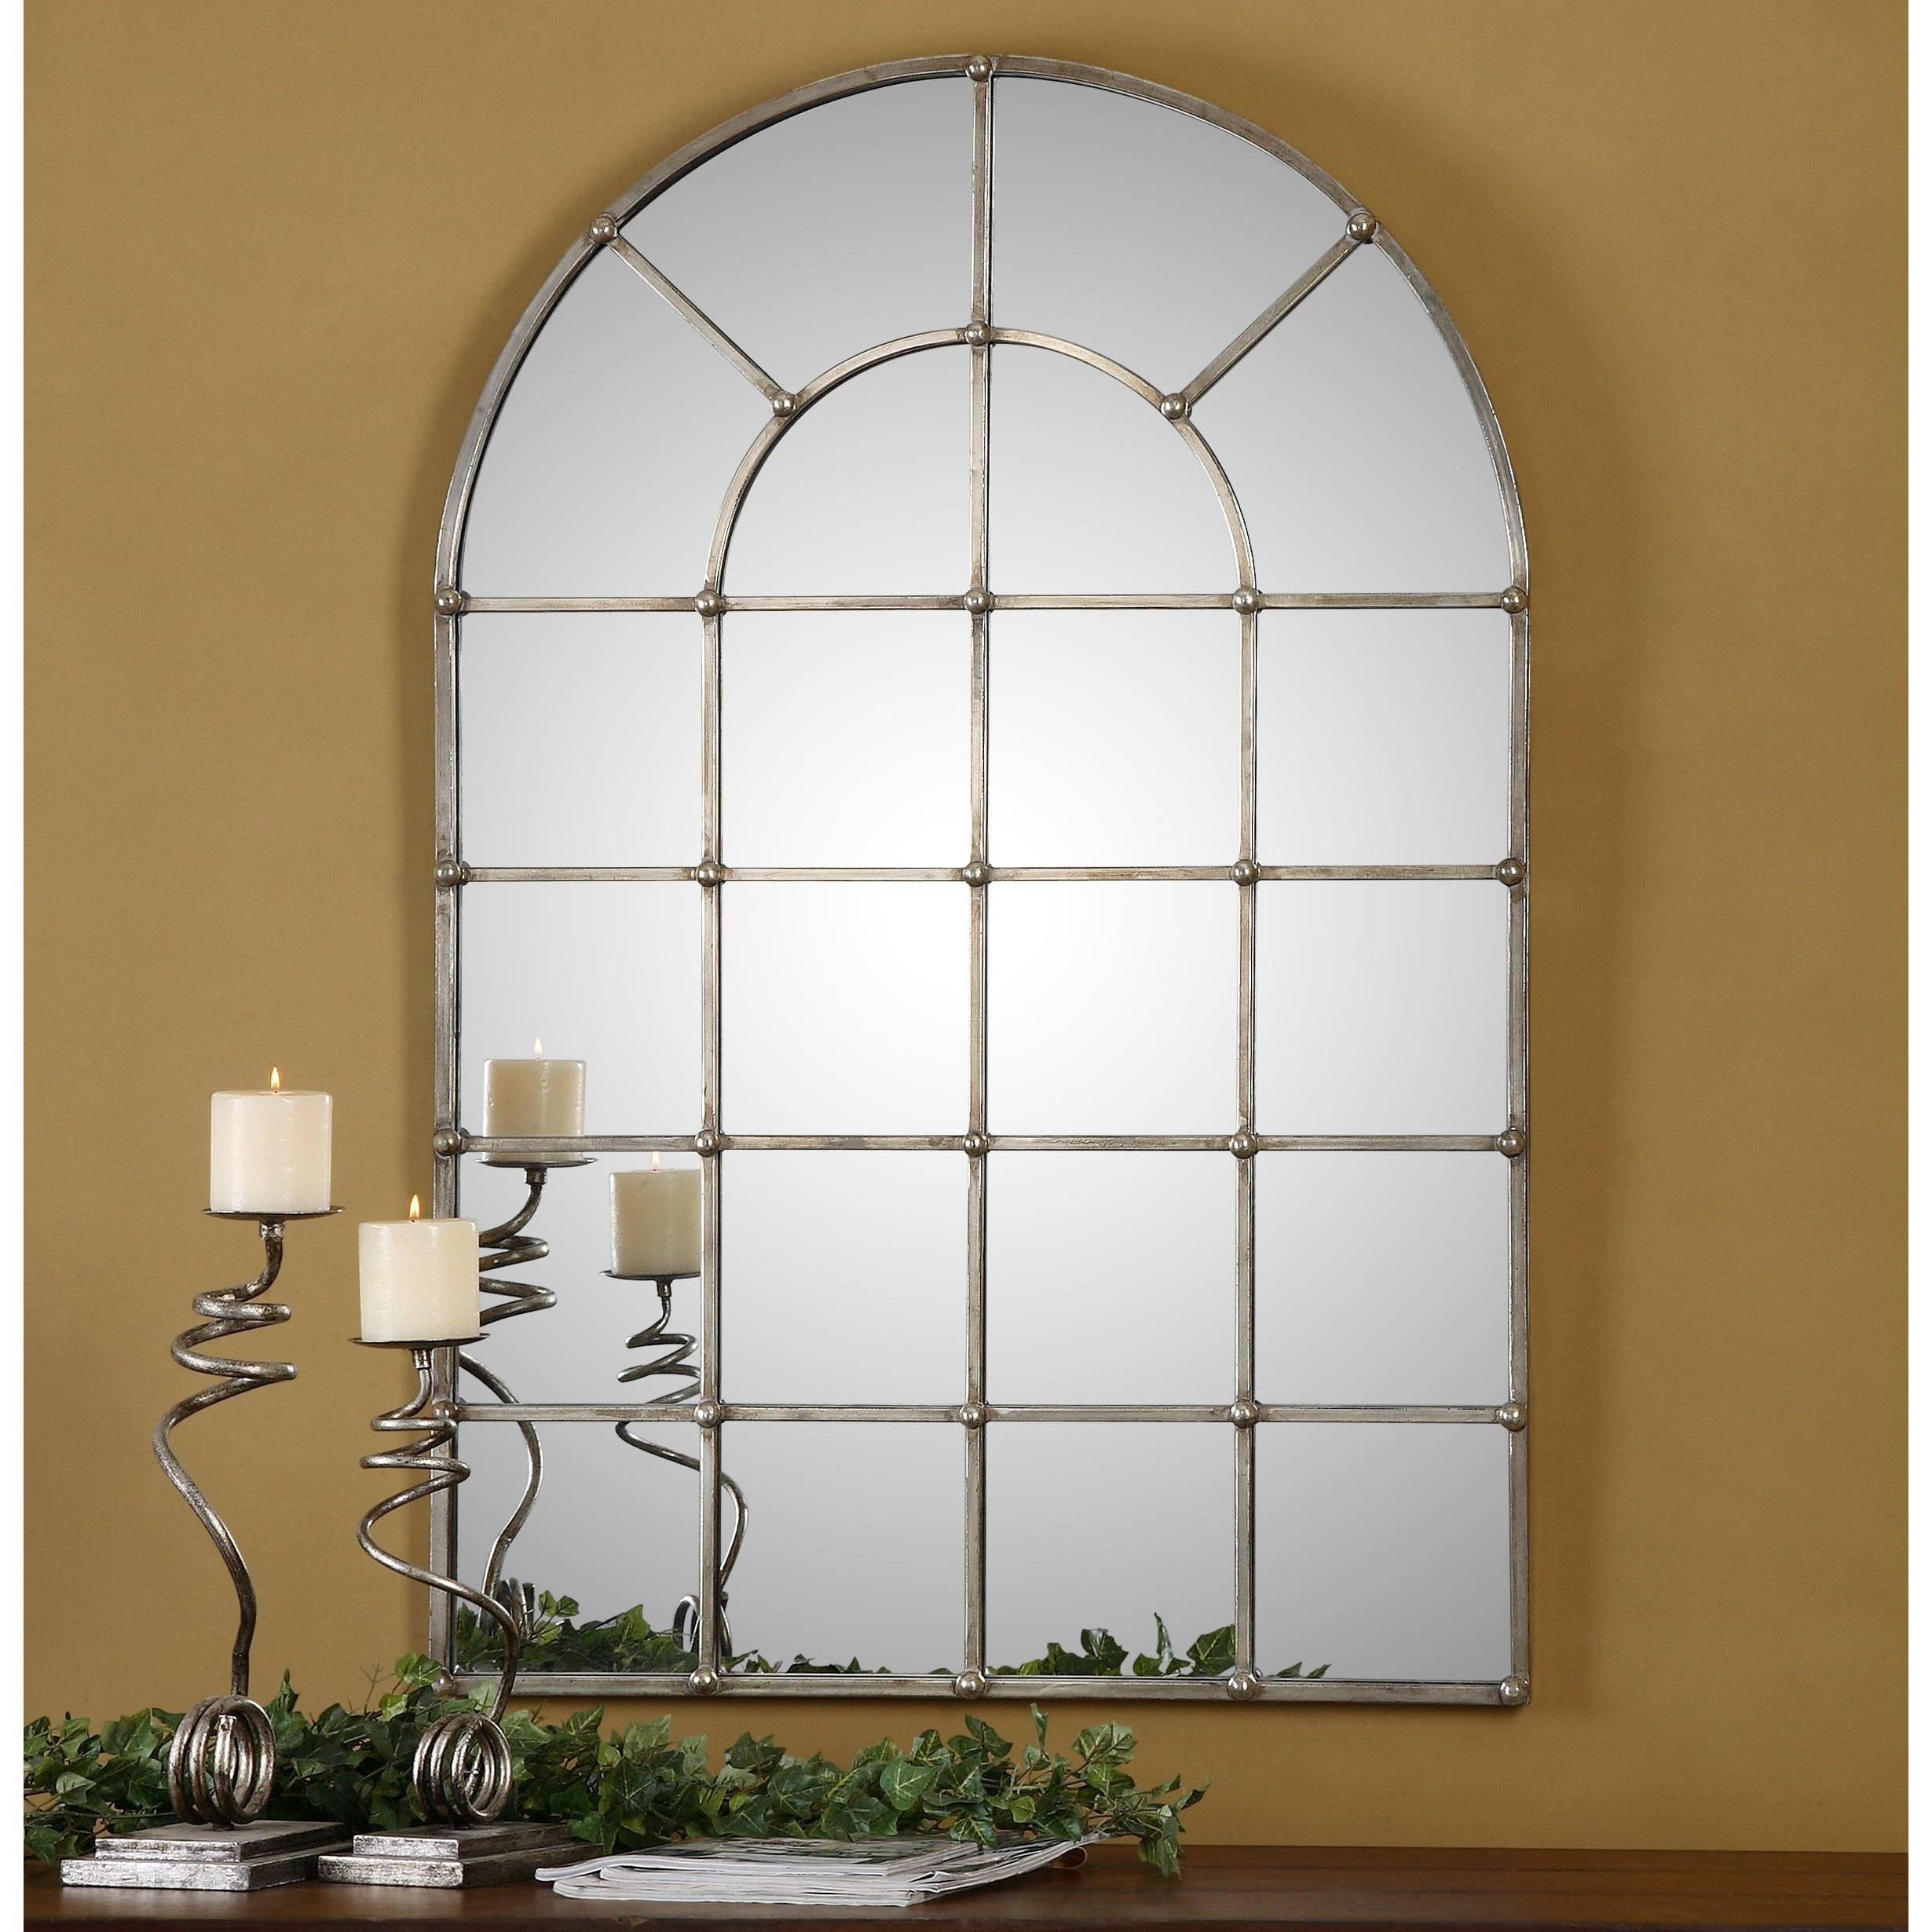 Window Pane Wall Mirror 124 Trendy Interior Or Arched Mirror inside Arched Wall Mirrors (Image 15 of 15)